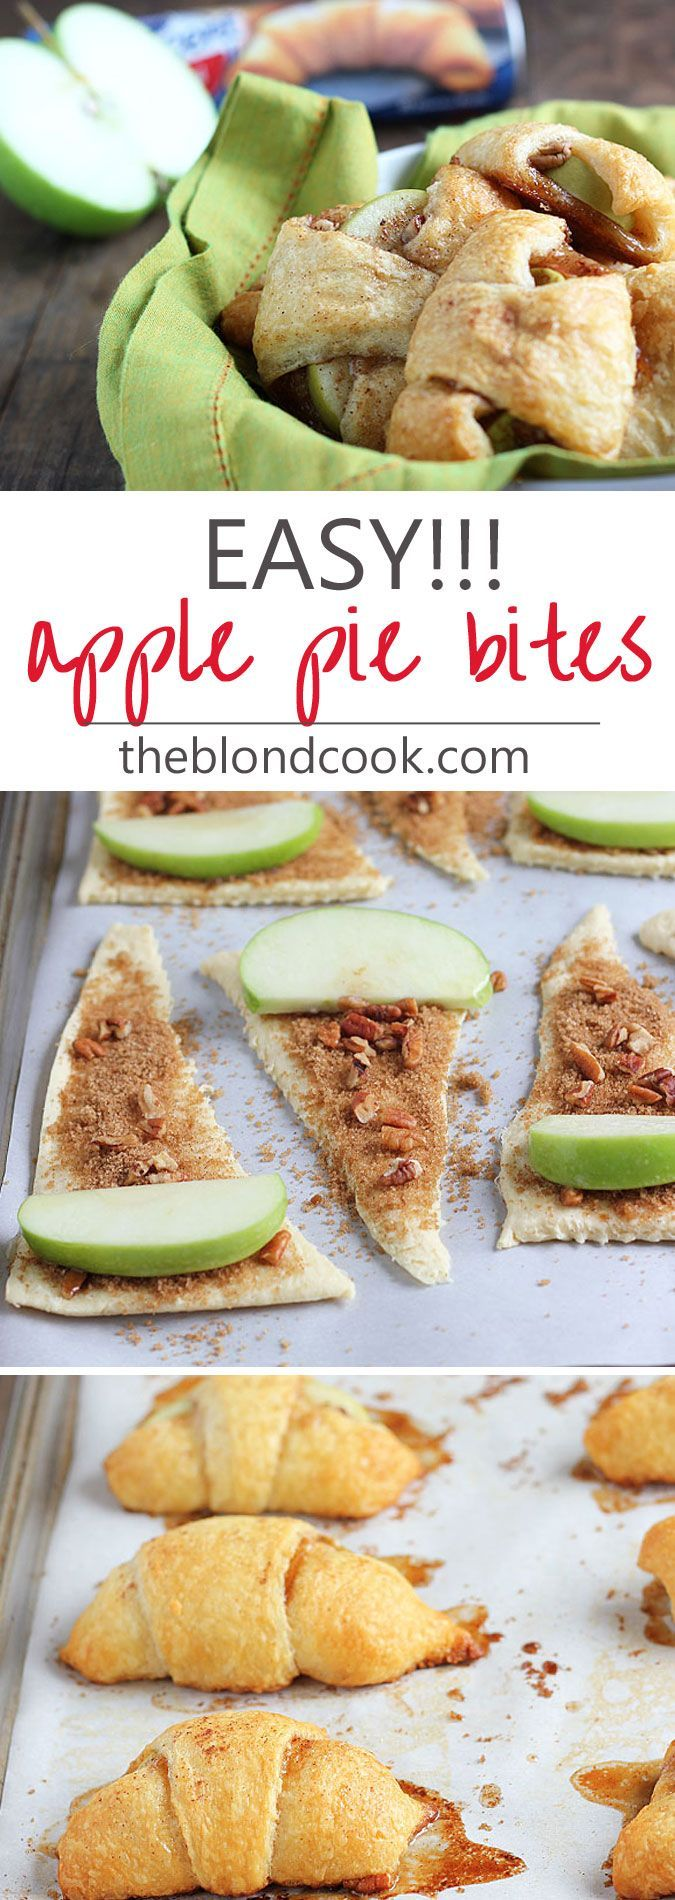 EASY Apple Pie Bites made with crescent rolls. Great idea for party food and a fun project to do with kids!